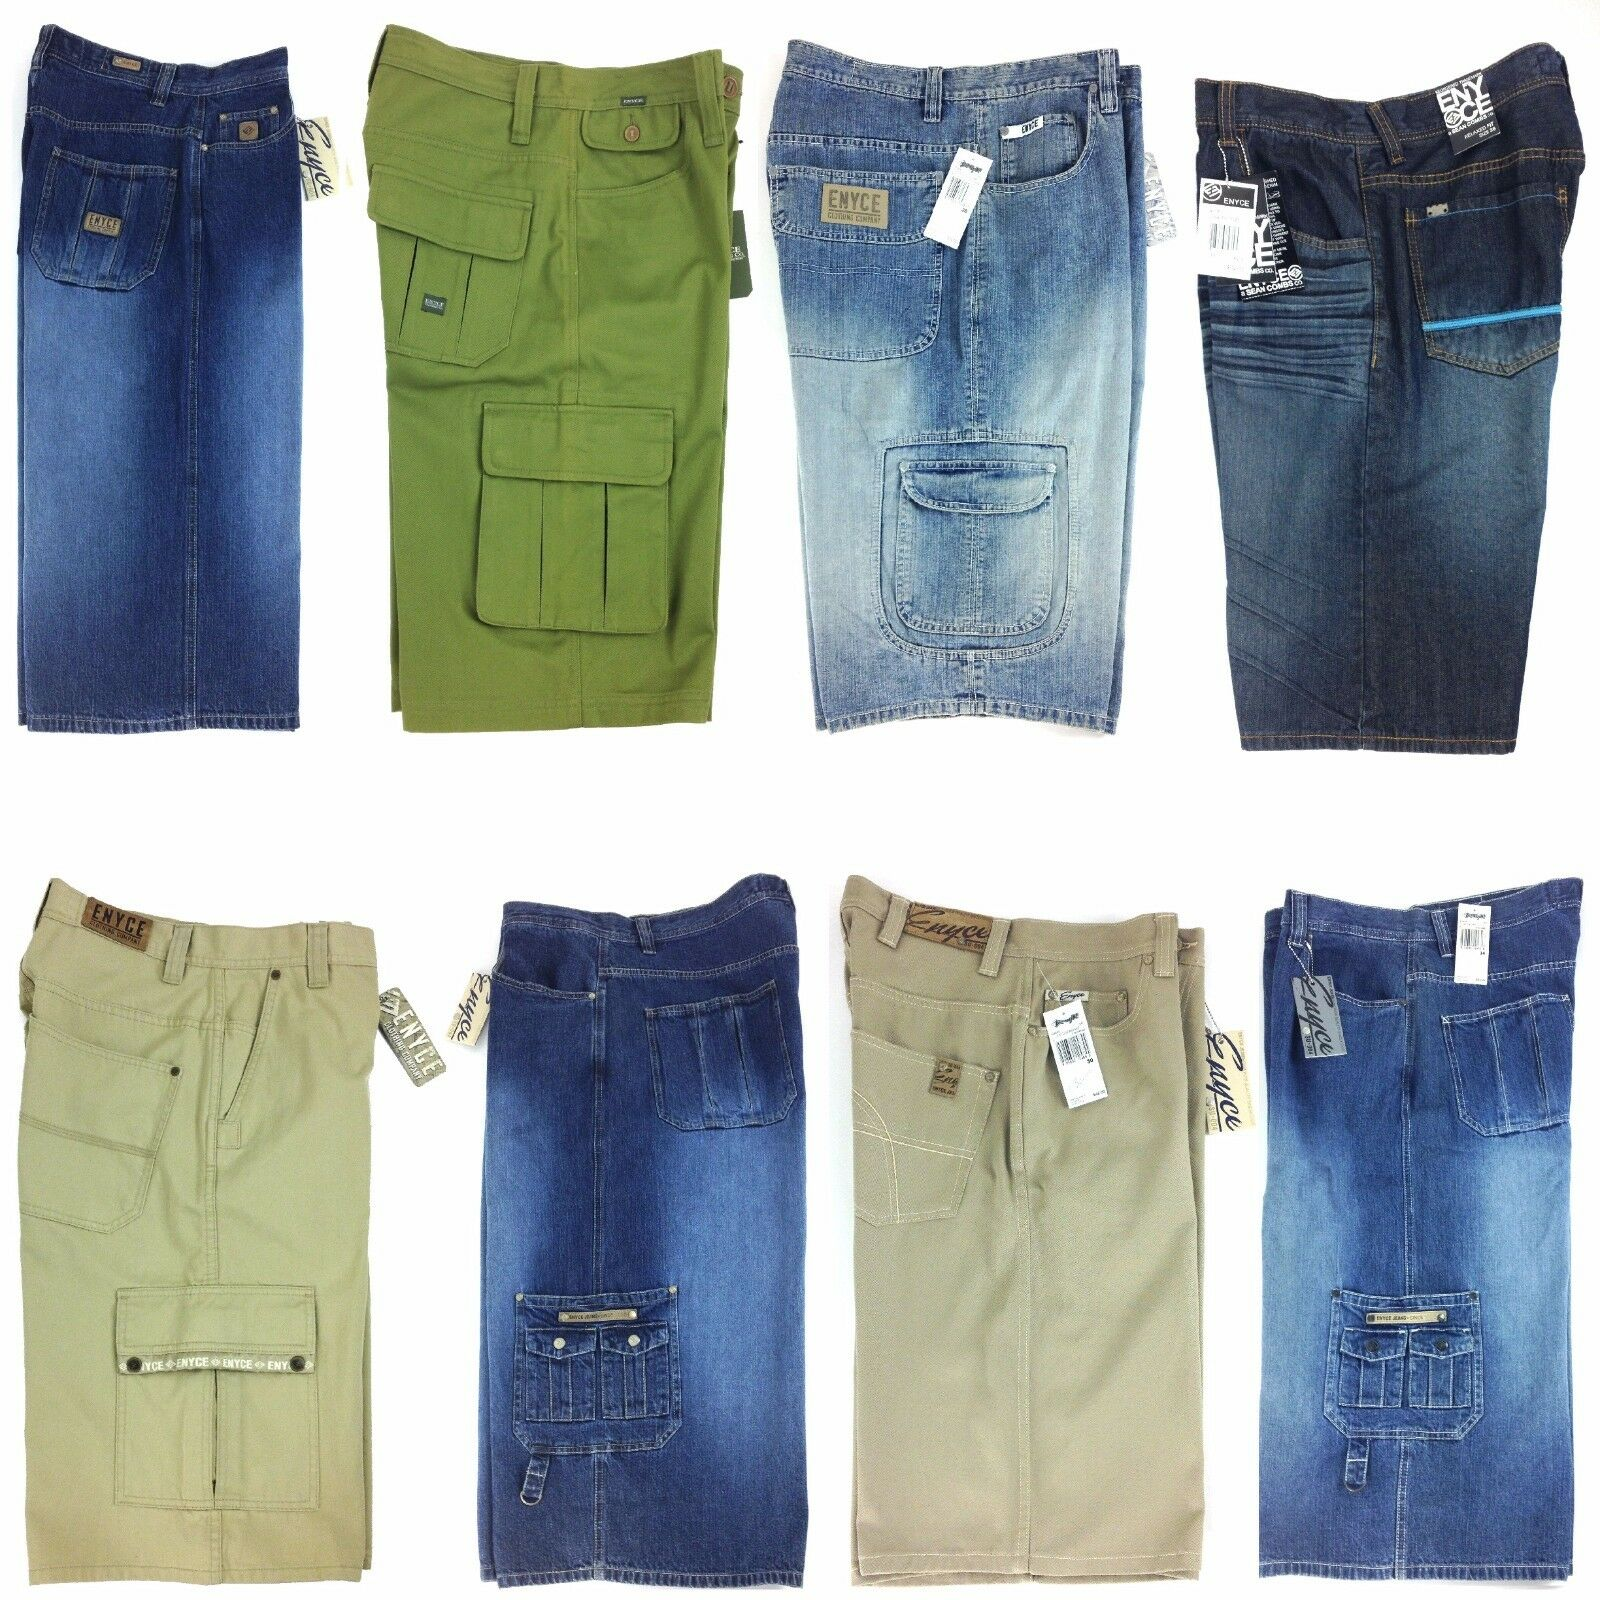 ENYCE, DENIM MEN'S SHORT, GROUP-4, ASSORTED STYLES, LIMITED COLOR & SIZES,